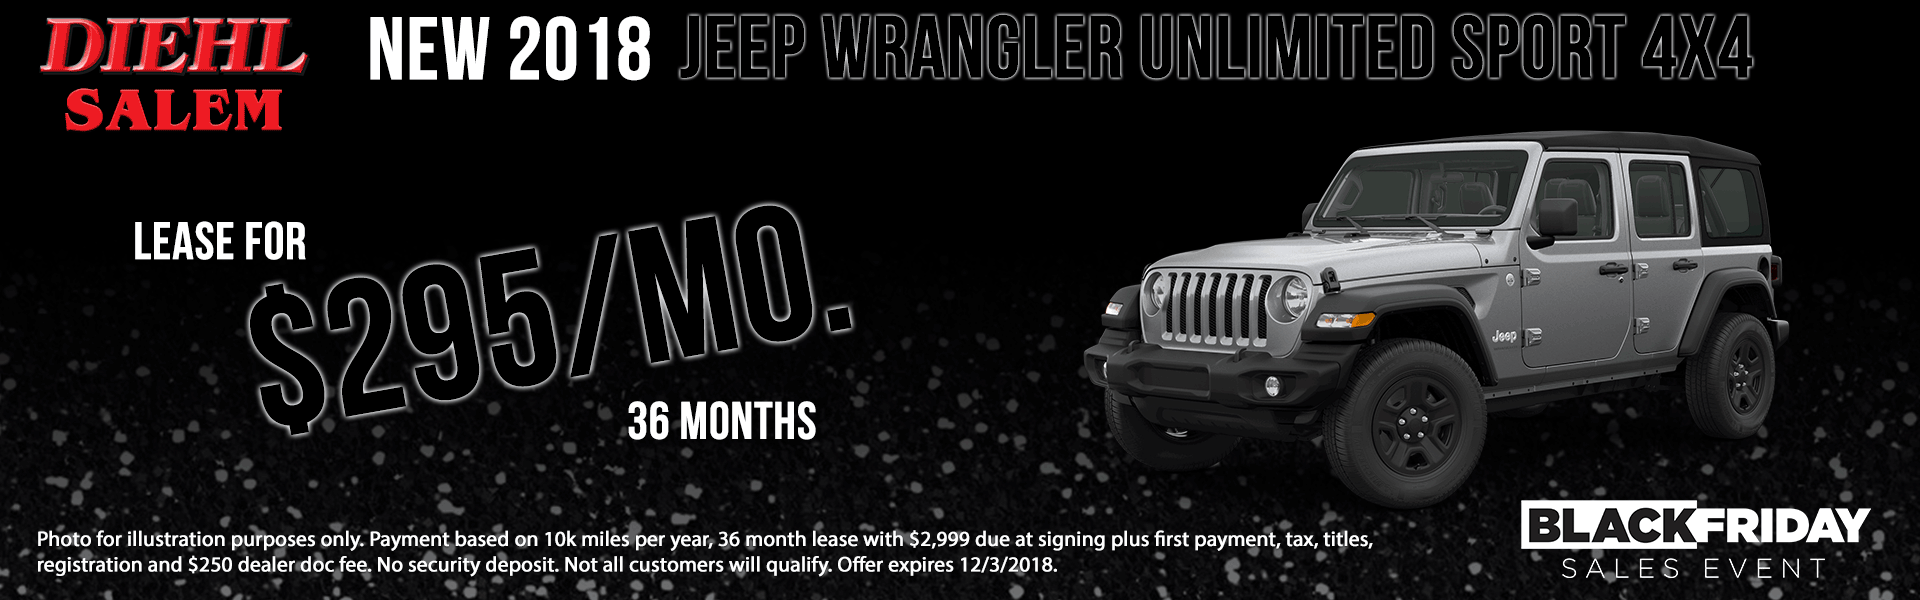 Diehl of Salem ohio chrysler jeep dodge ram new and used sales, service, parts, accessories, monthly specials NEW 2018 JEEP WRANGLER UNLIMITED SPORT 4X4